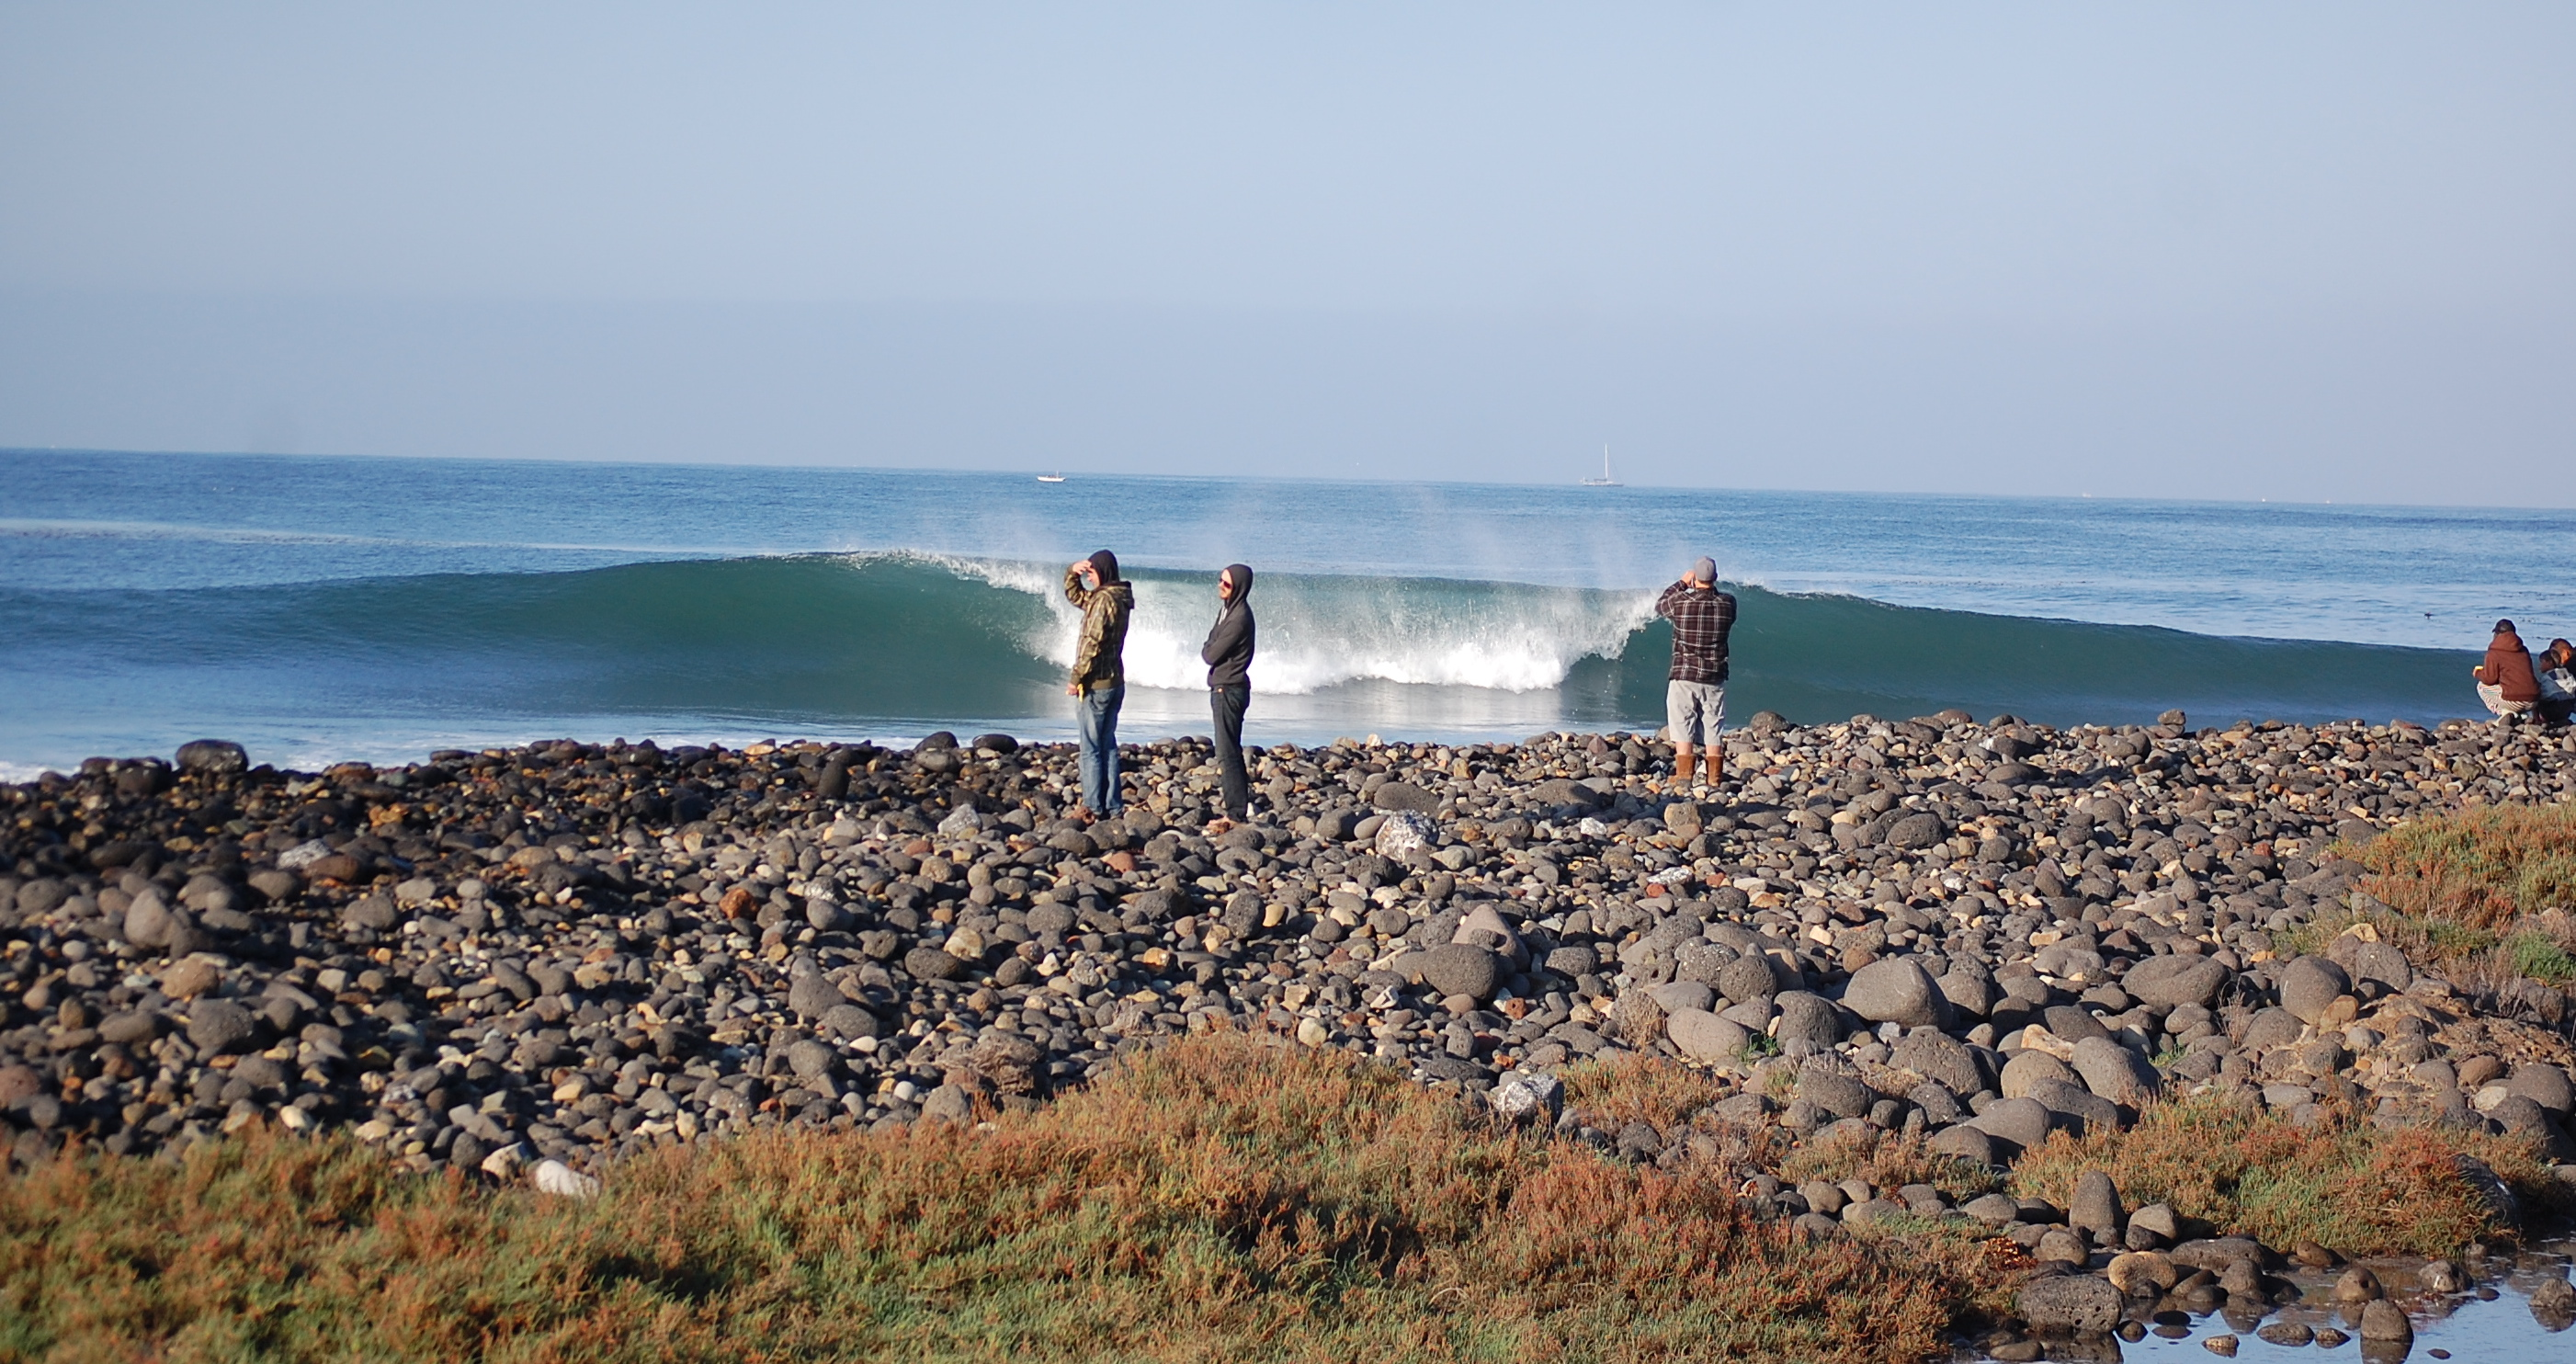 Sunday morning--San Miguel channeling Lowers.